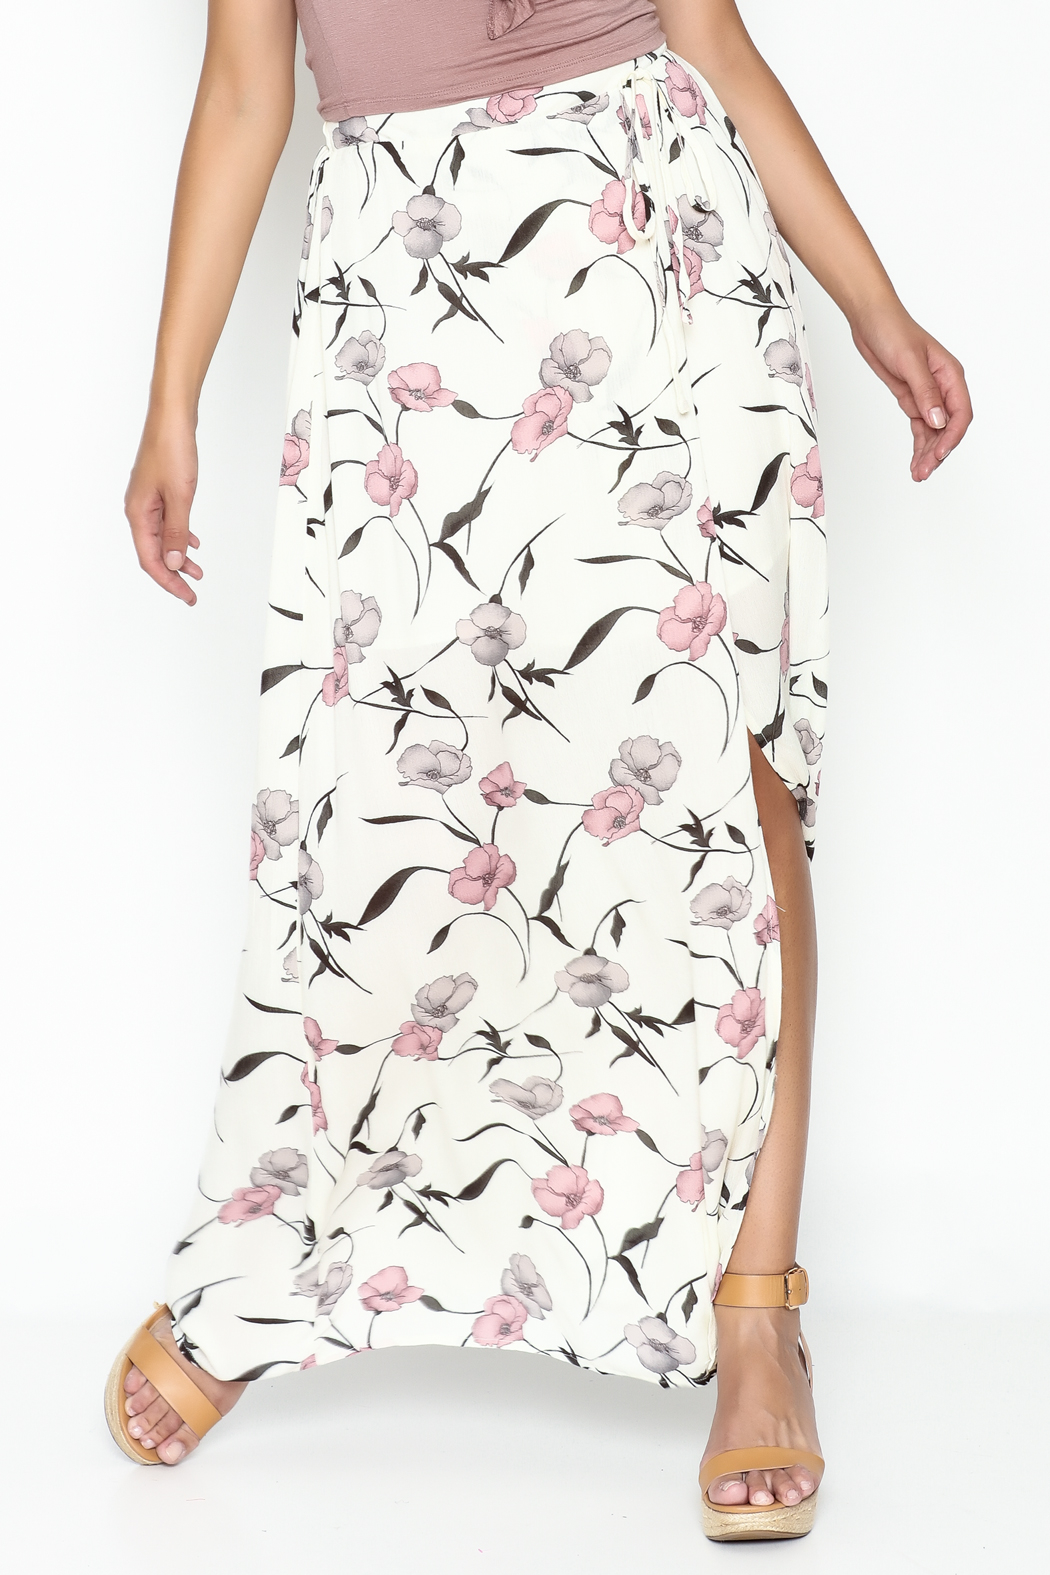 y&i clothing boutique Spaced Floral Maxi Skirt - Main Image